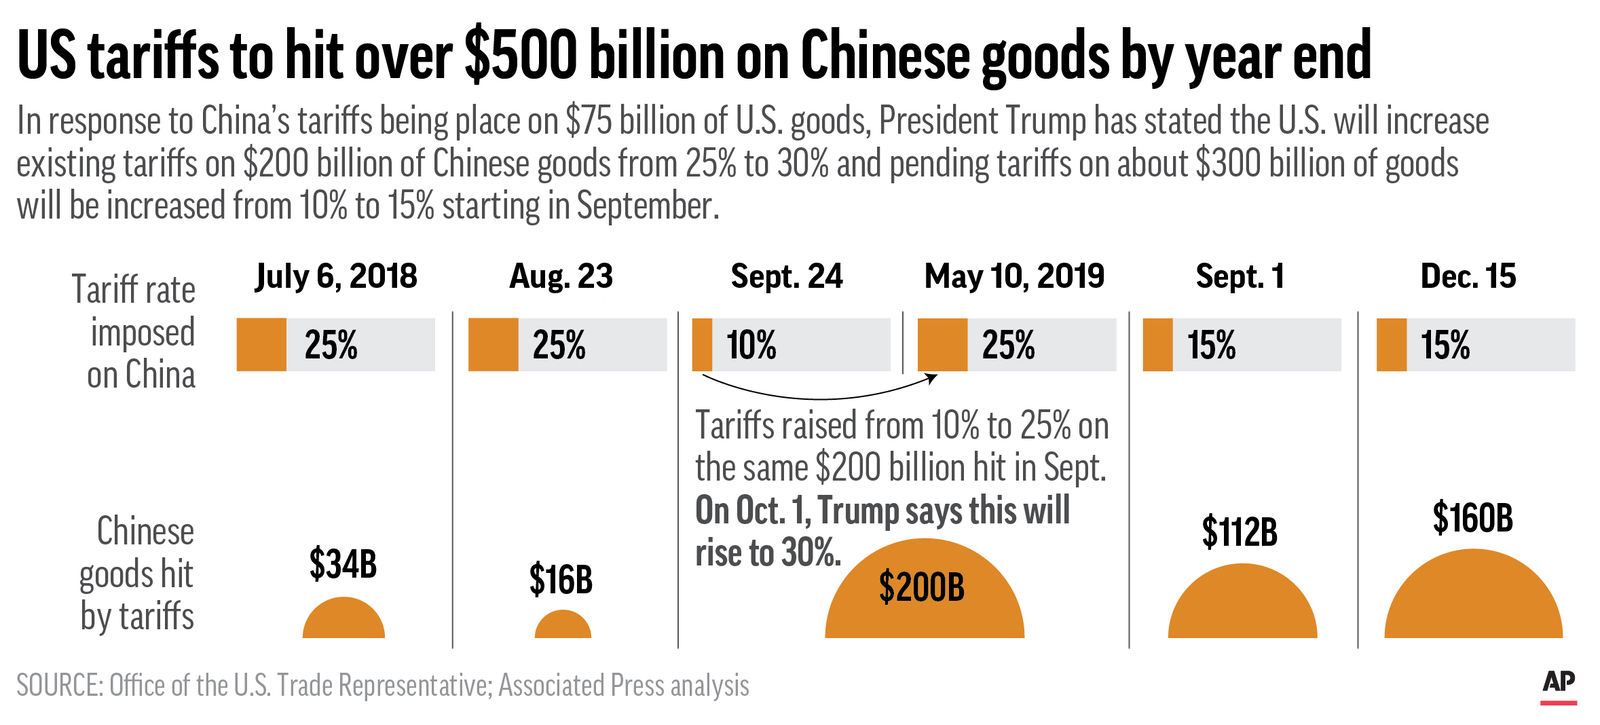 UPDATES with latest changes to U.S. tariffs as per President Trump's Twitter announcement. Chart shows tariffs imposed on China by the U.S. since July 2018;